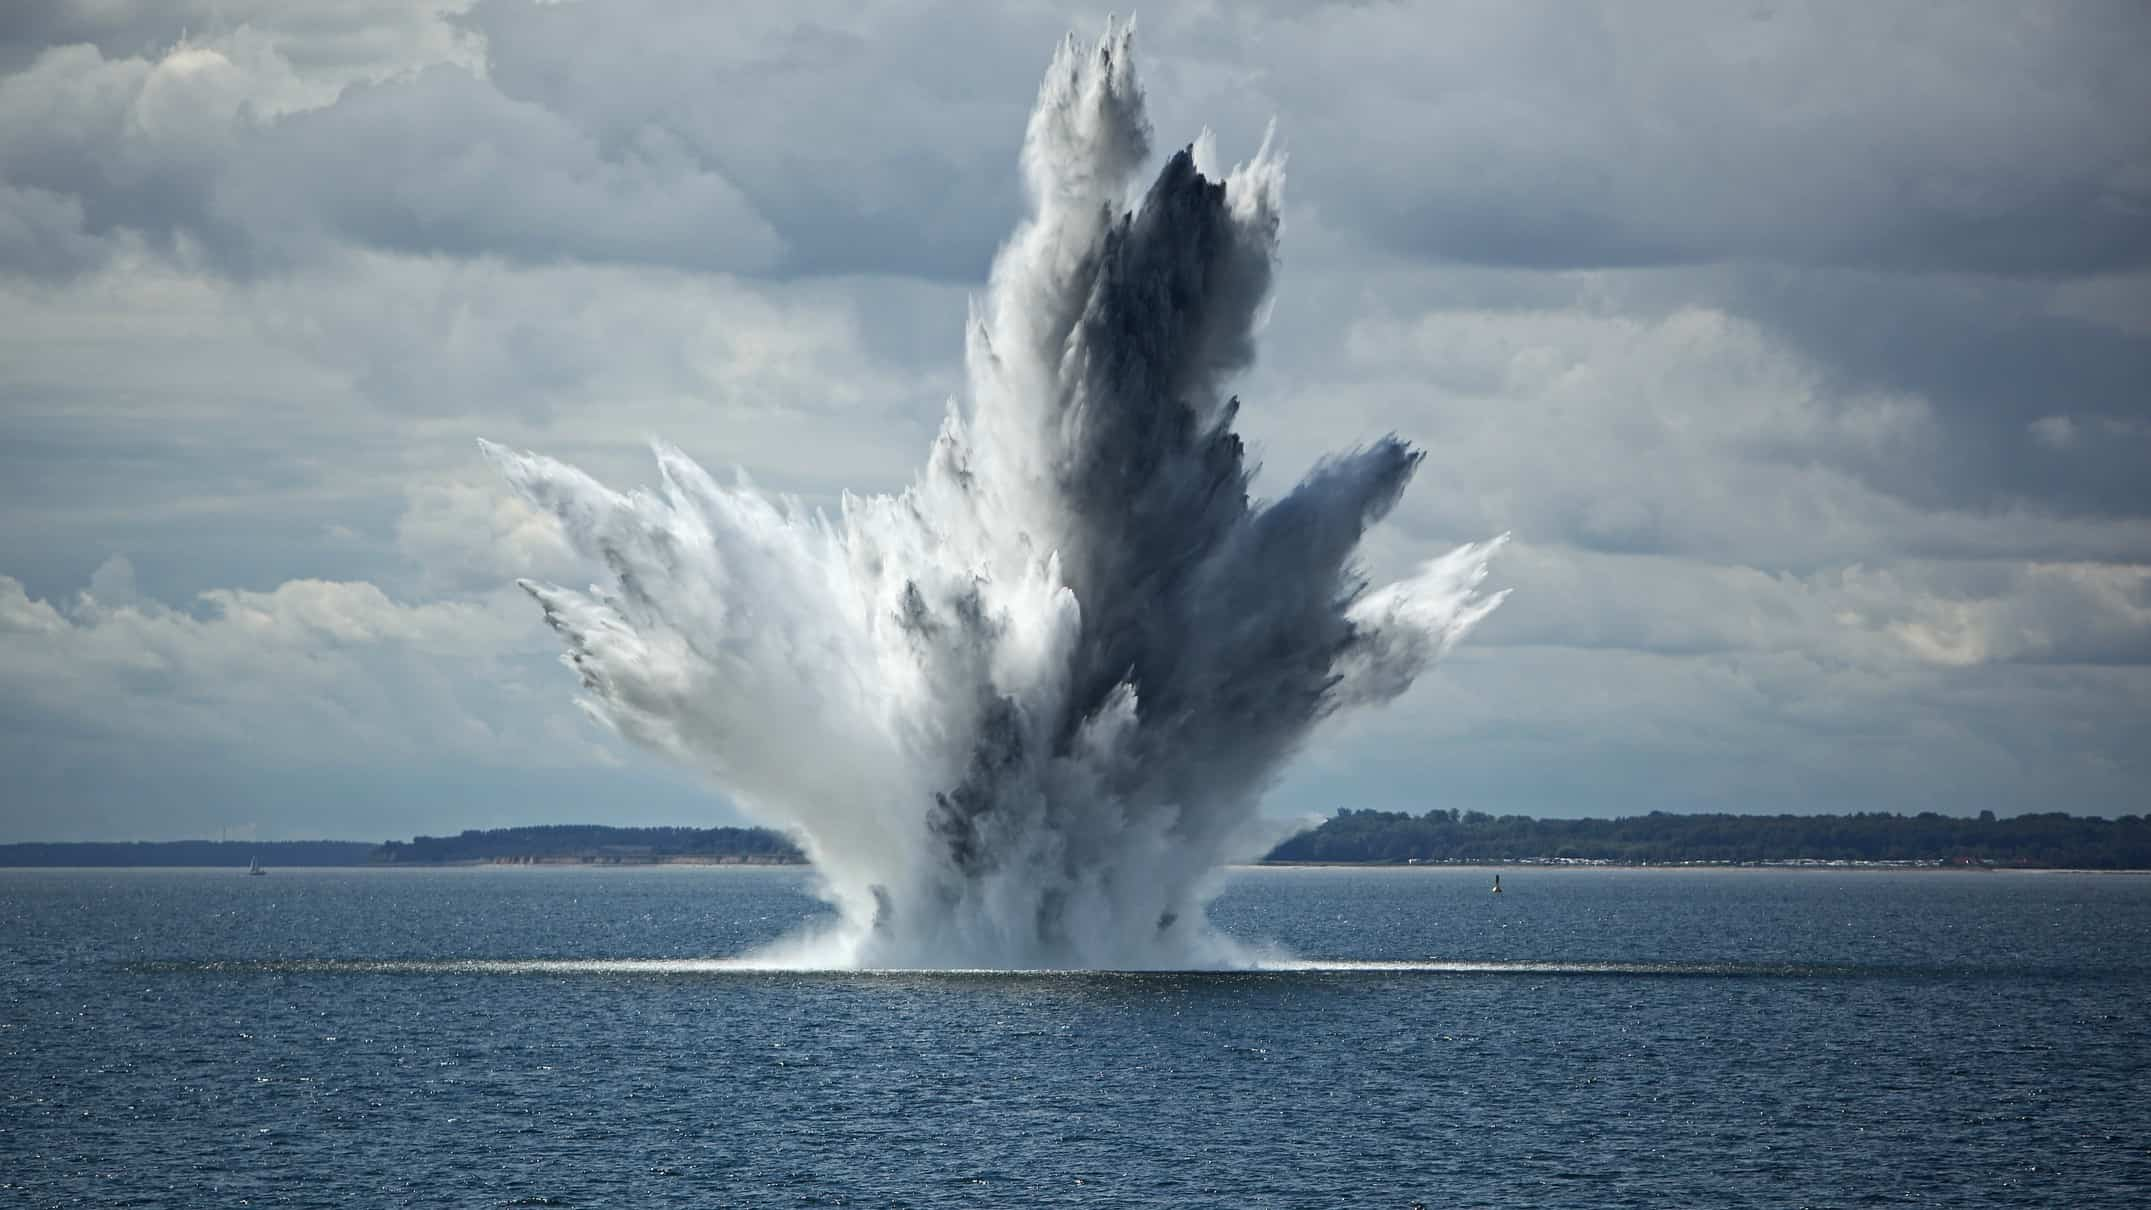 surging asx share price represented by explosion coming out of lake